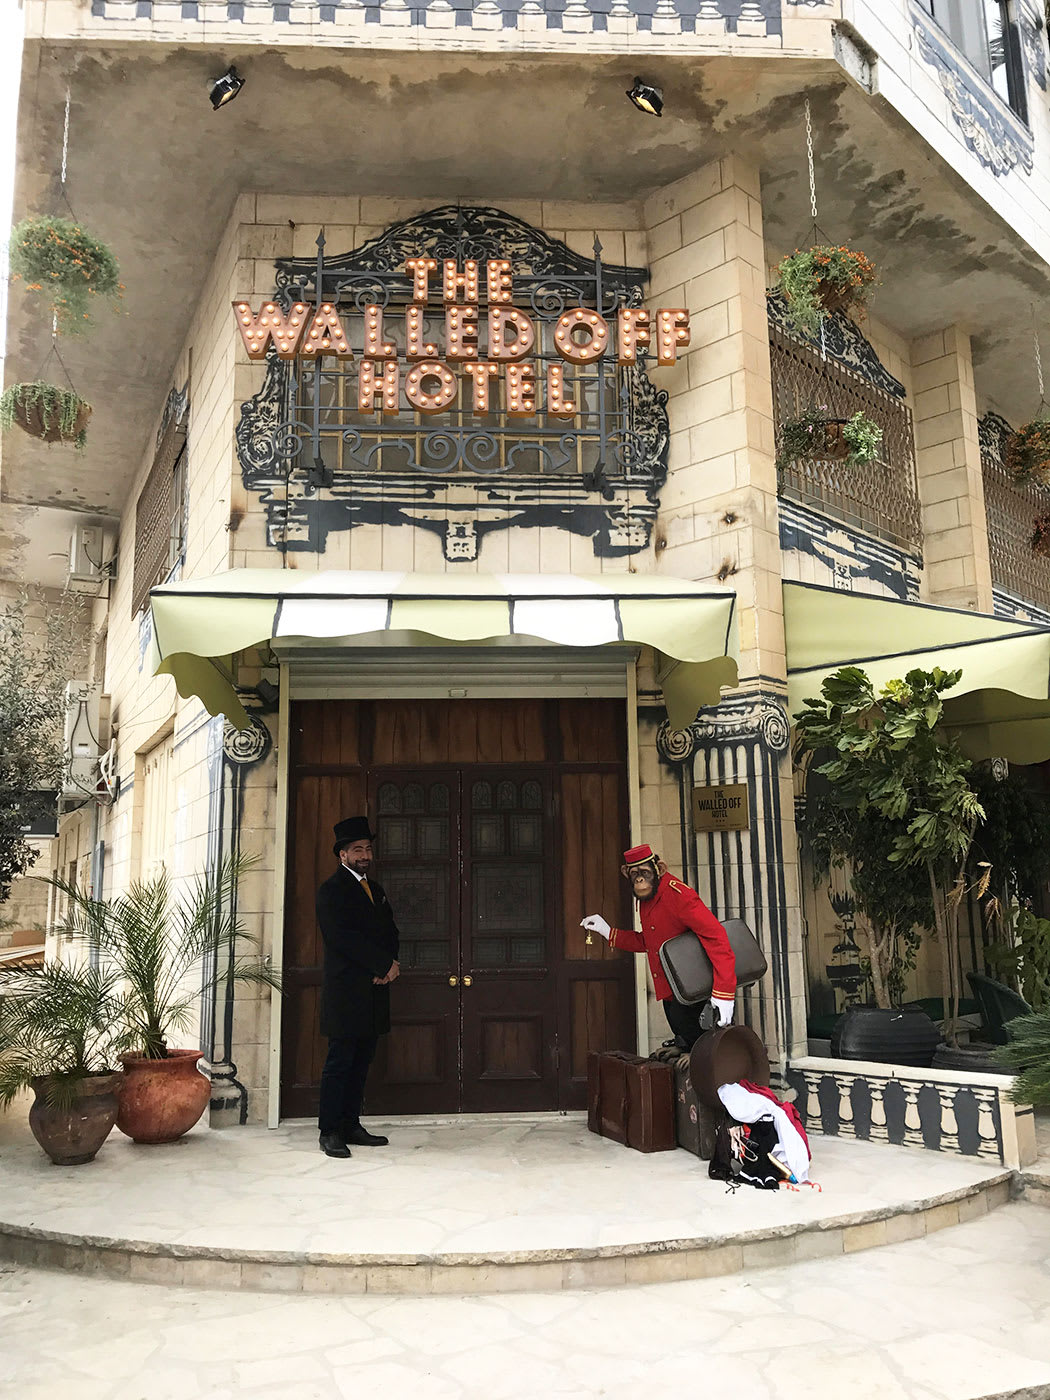 An Inside Look at Banksy's New 'Walled Off Hotel' in Bethlehem